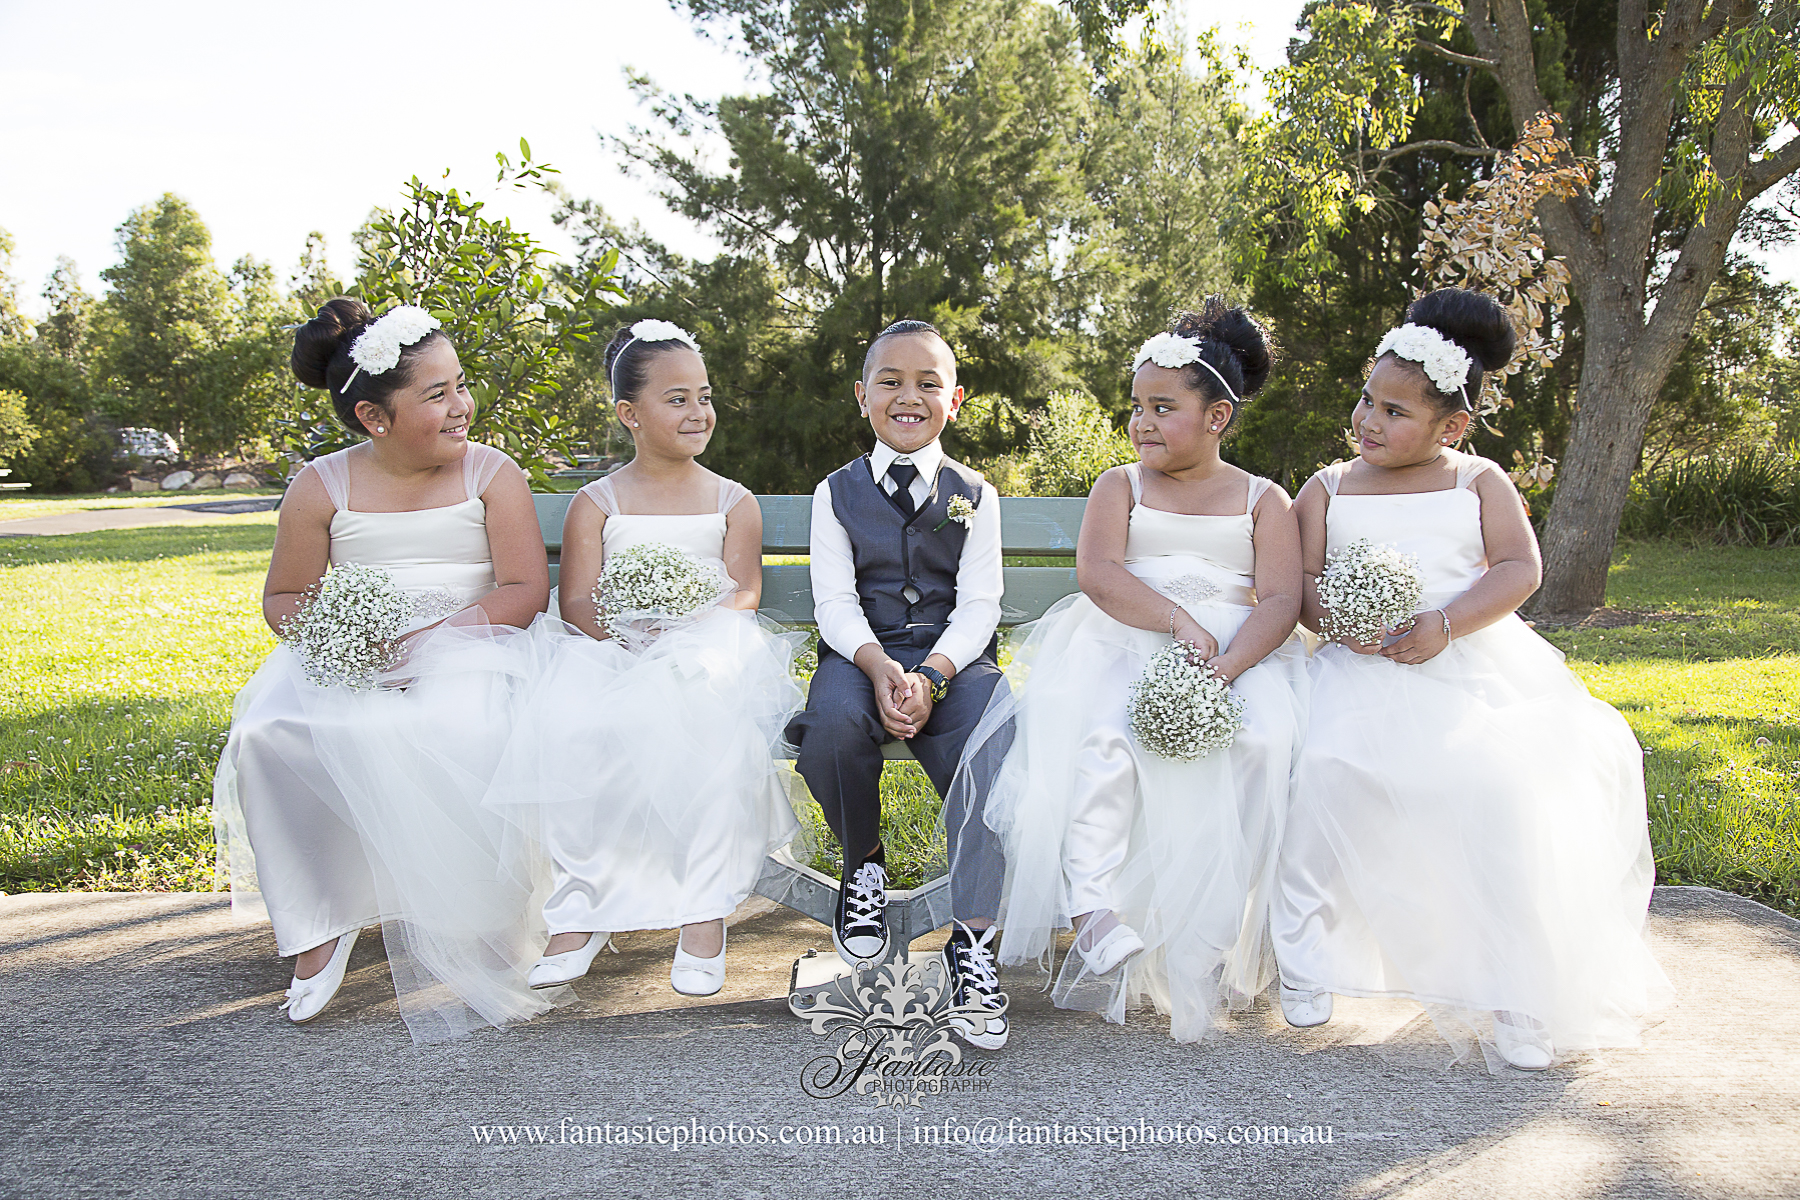 Wedding Photography Page boys and flowers girls photo | Fantasie Photography